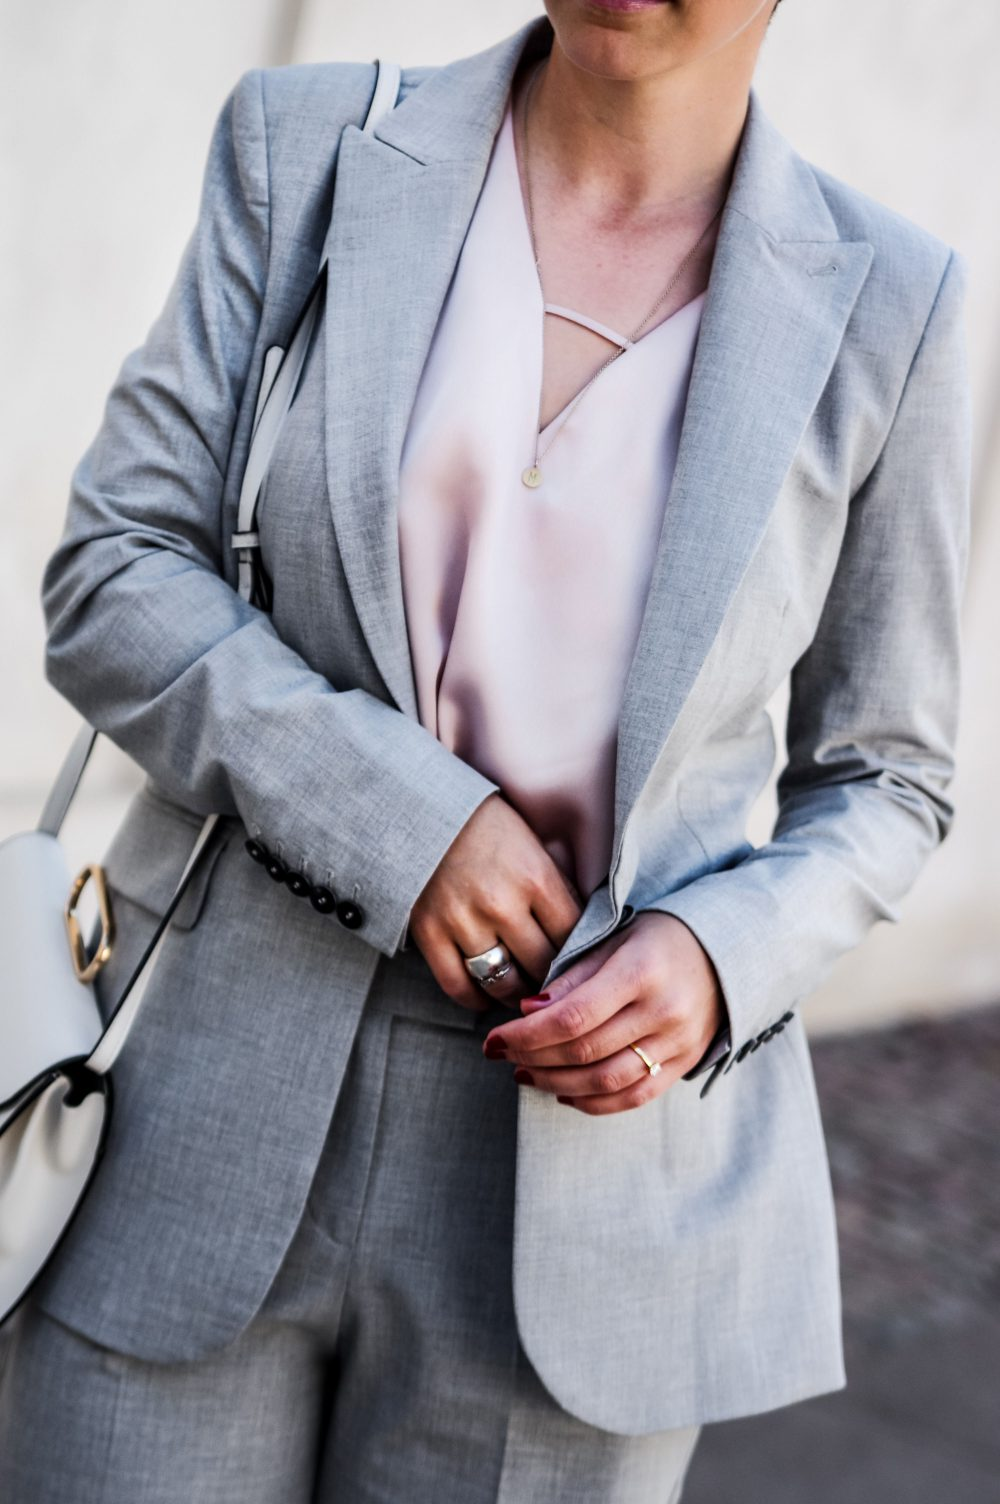 12 summer blazers for work and casual, summer suit, work wear, stylish work wear, summer fashion, summer stye 2